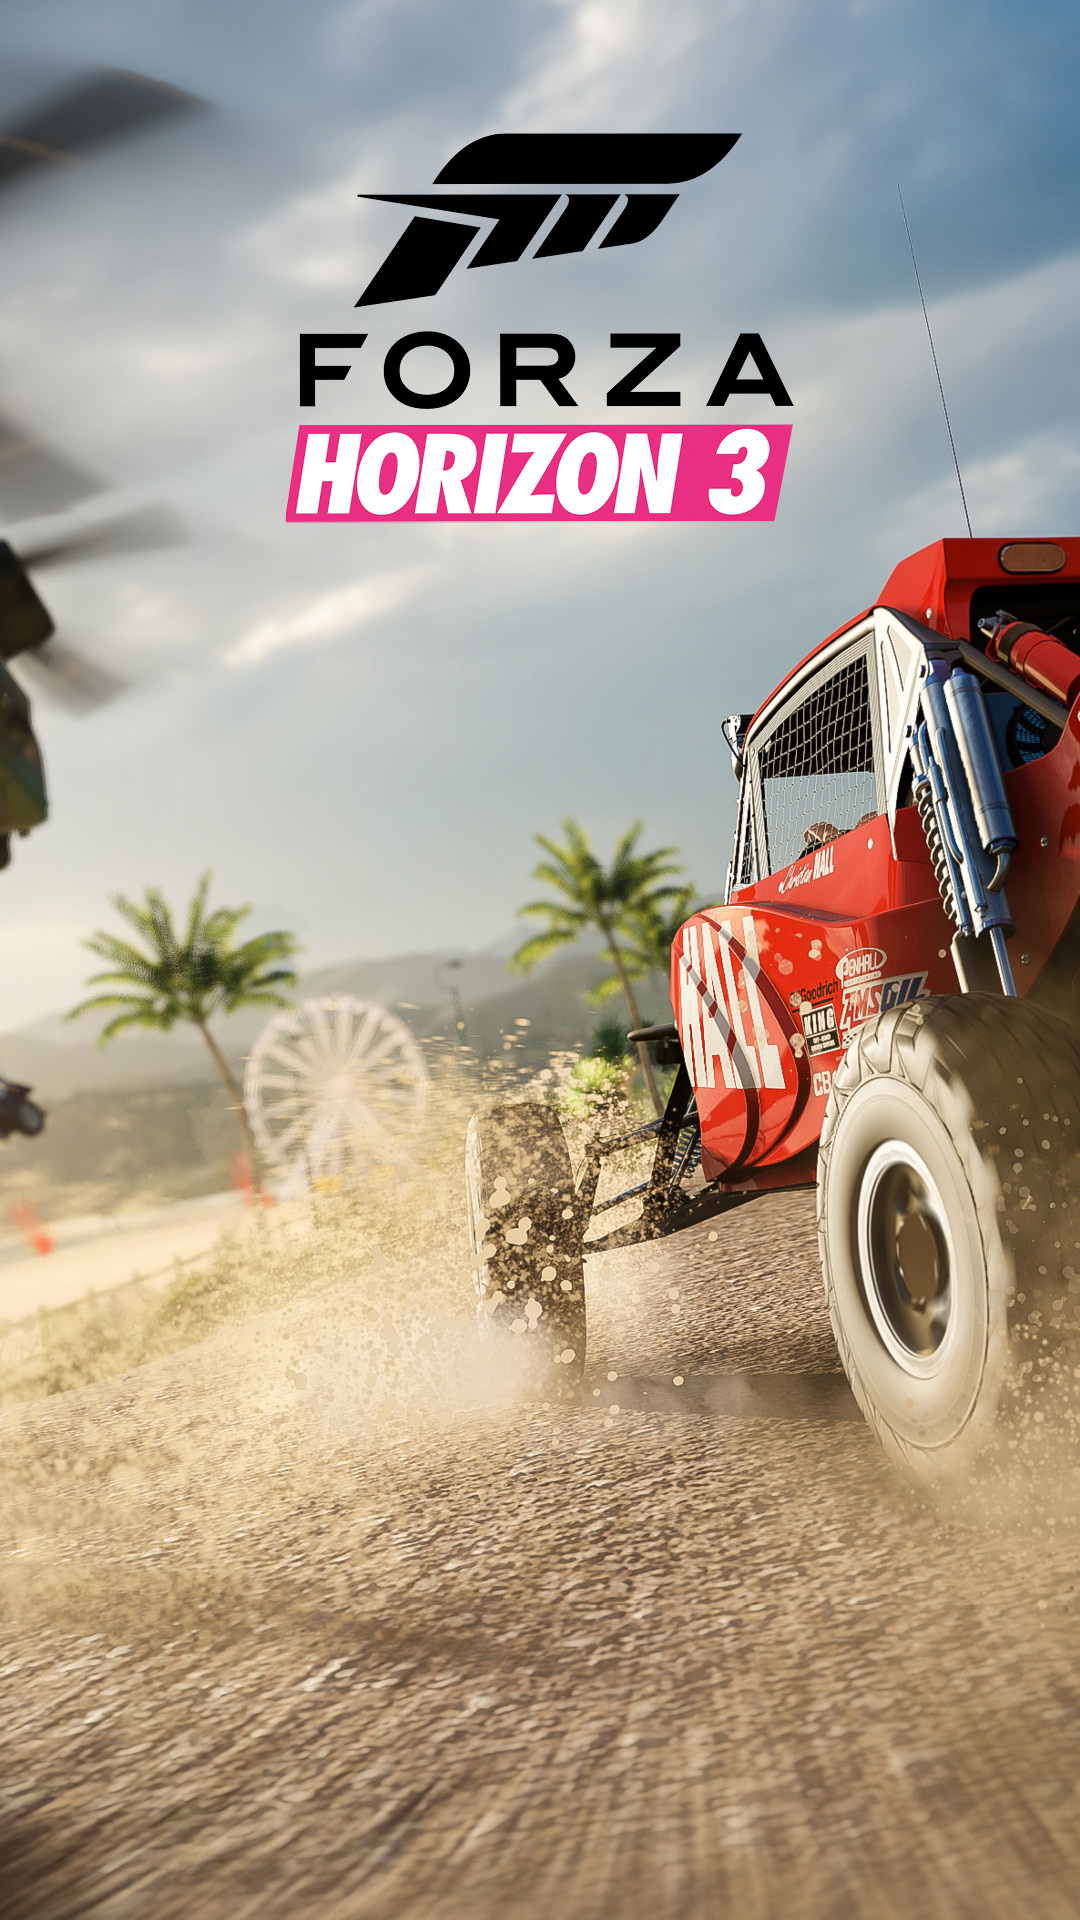 Fondos De Forza Horizon 3 Wallpapers